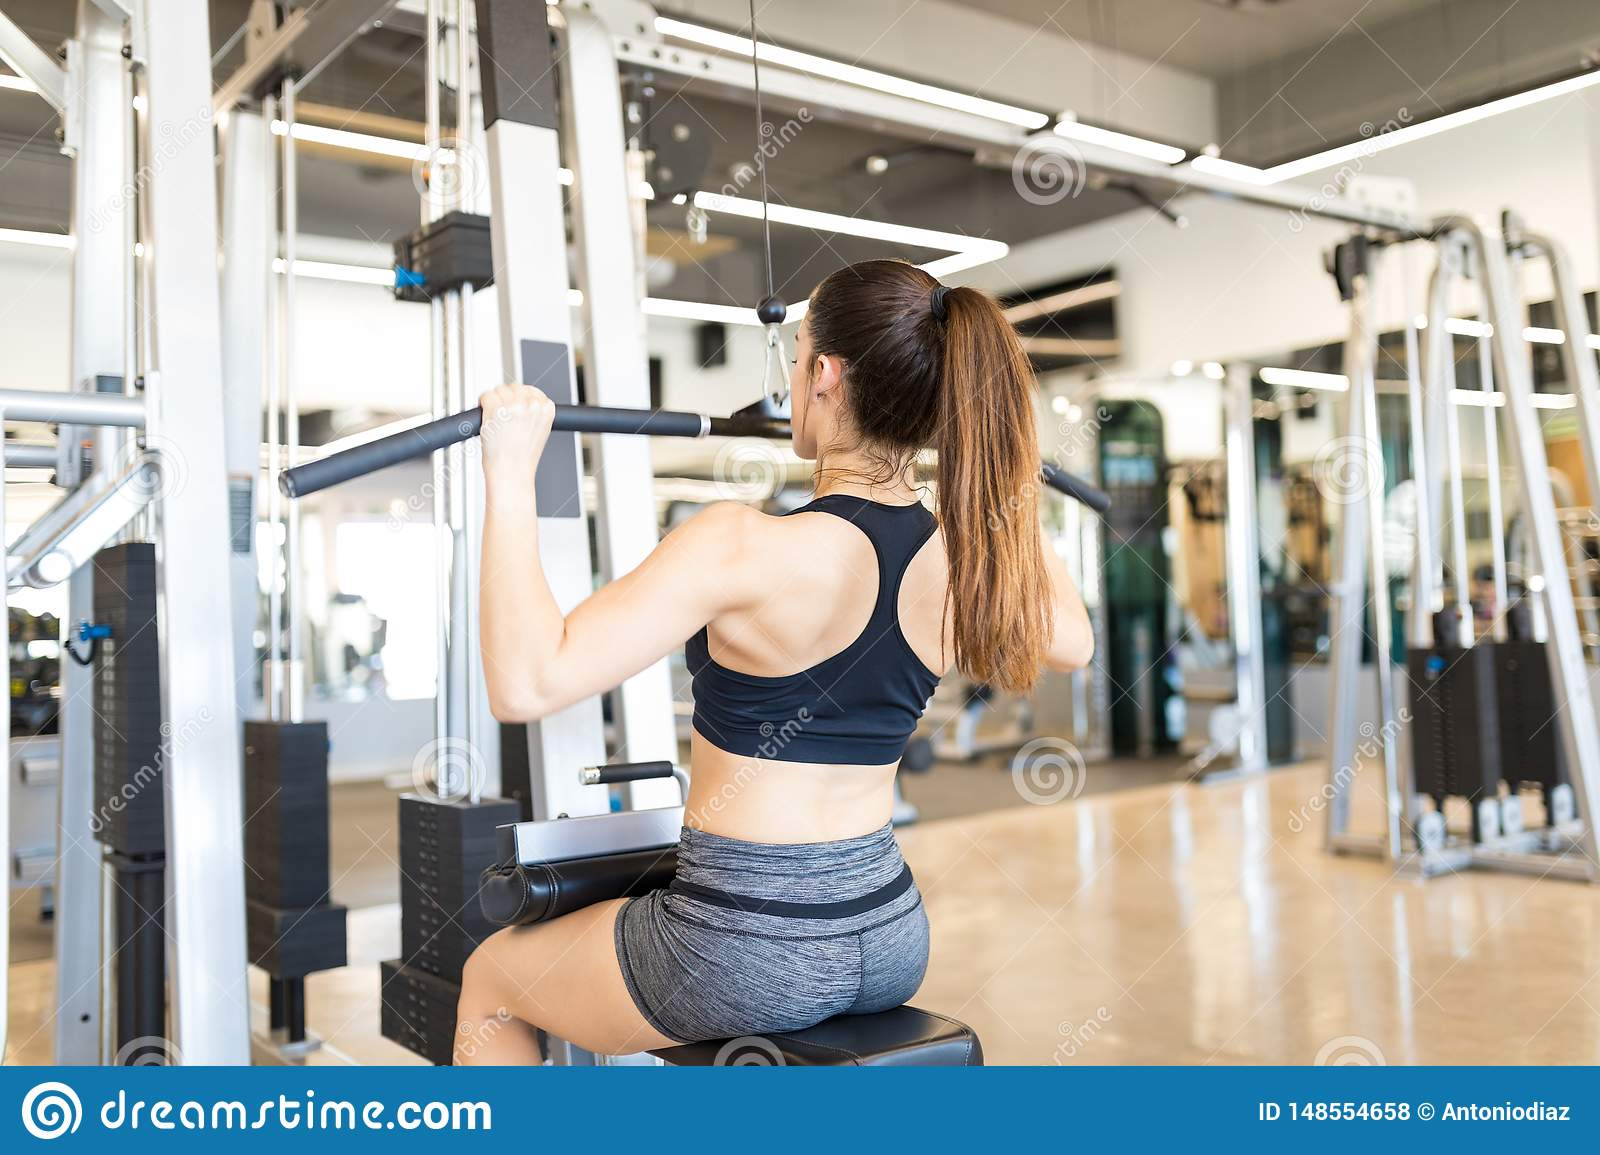 Exercise Helps To Build Lean Body Mass Stock Photo - Image